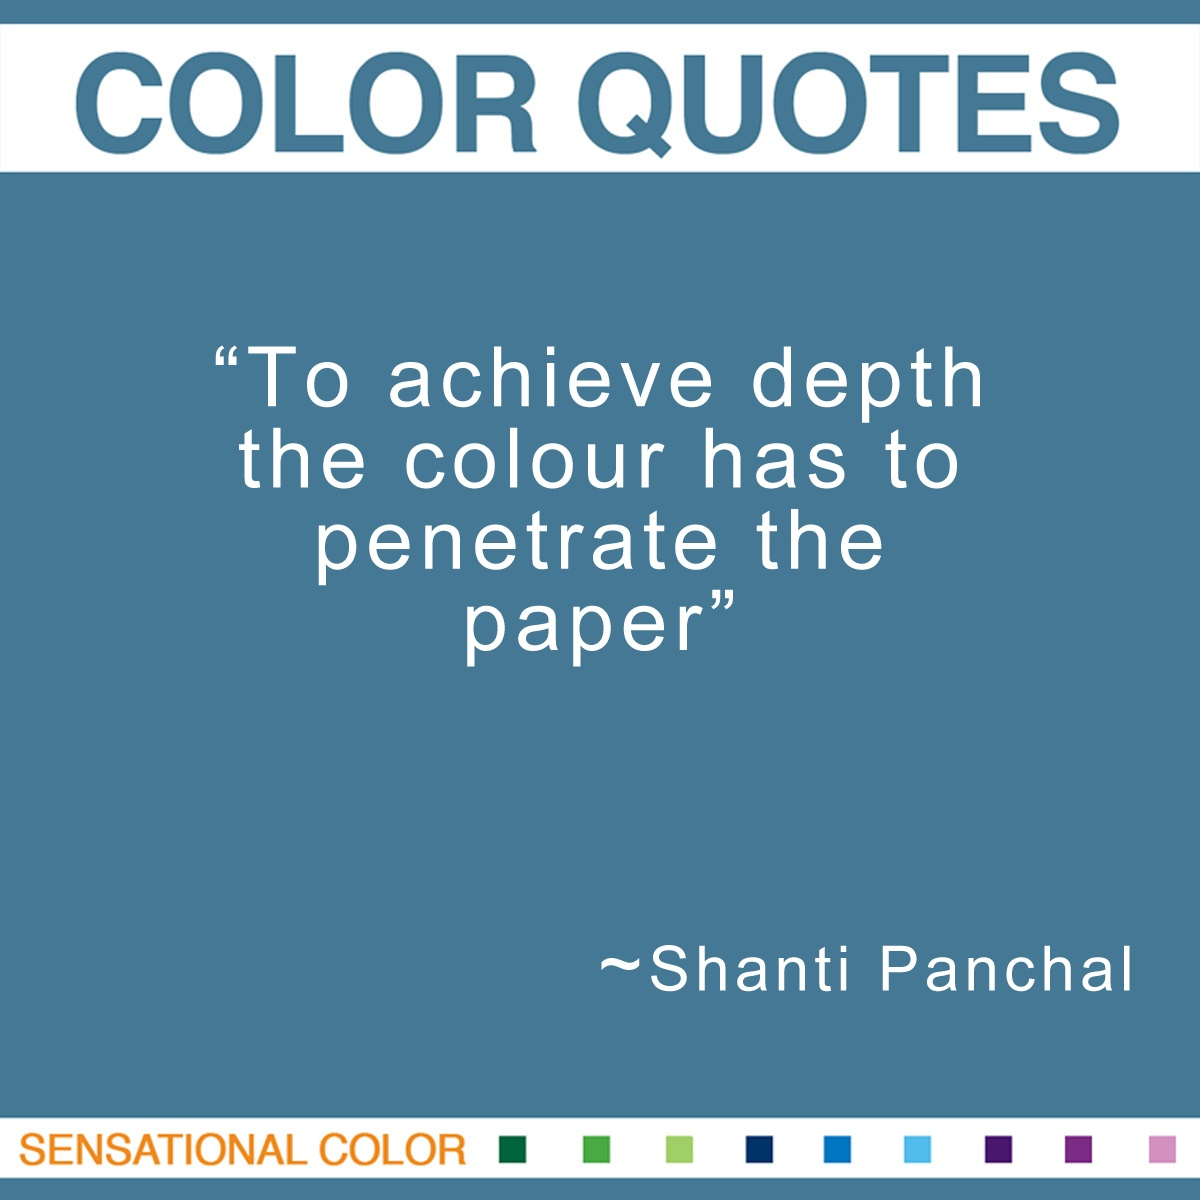 """To achieve depth the colour has to penetrate the paper."" - Shanti Panchal"